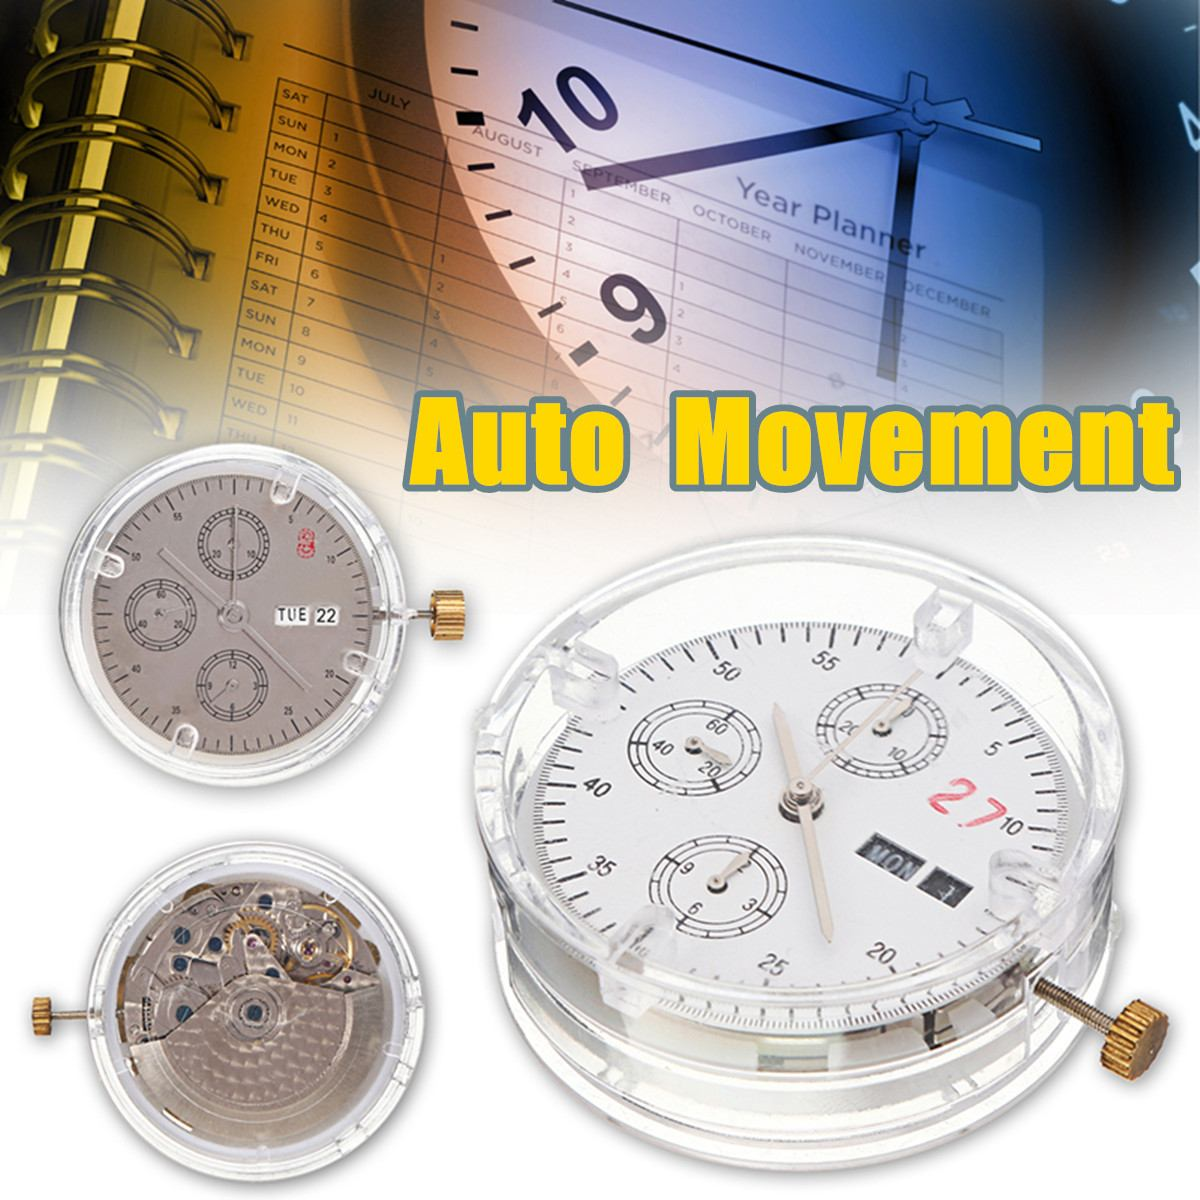 Automatic Movement ETA Clone 7750 Replacement Day Date Chronograph Watch Accessories Repair Tools Kit Parts 2